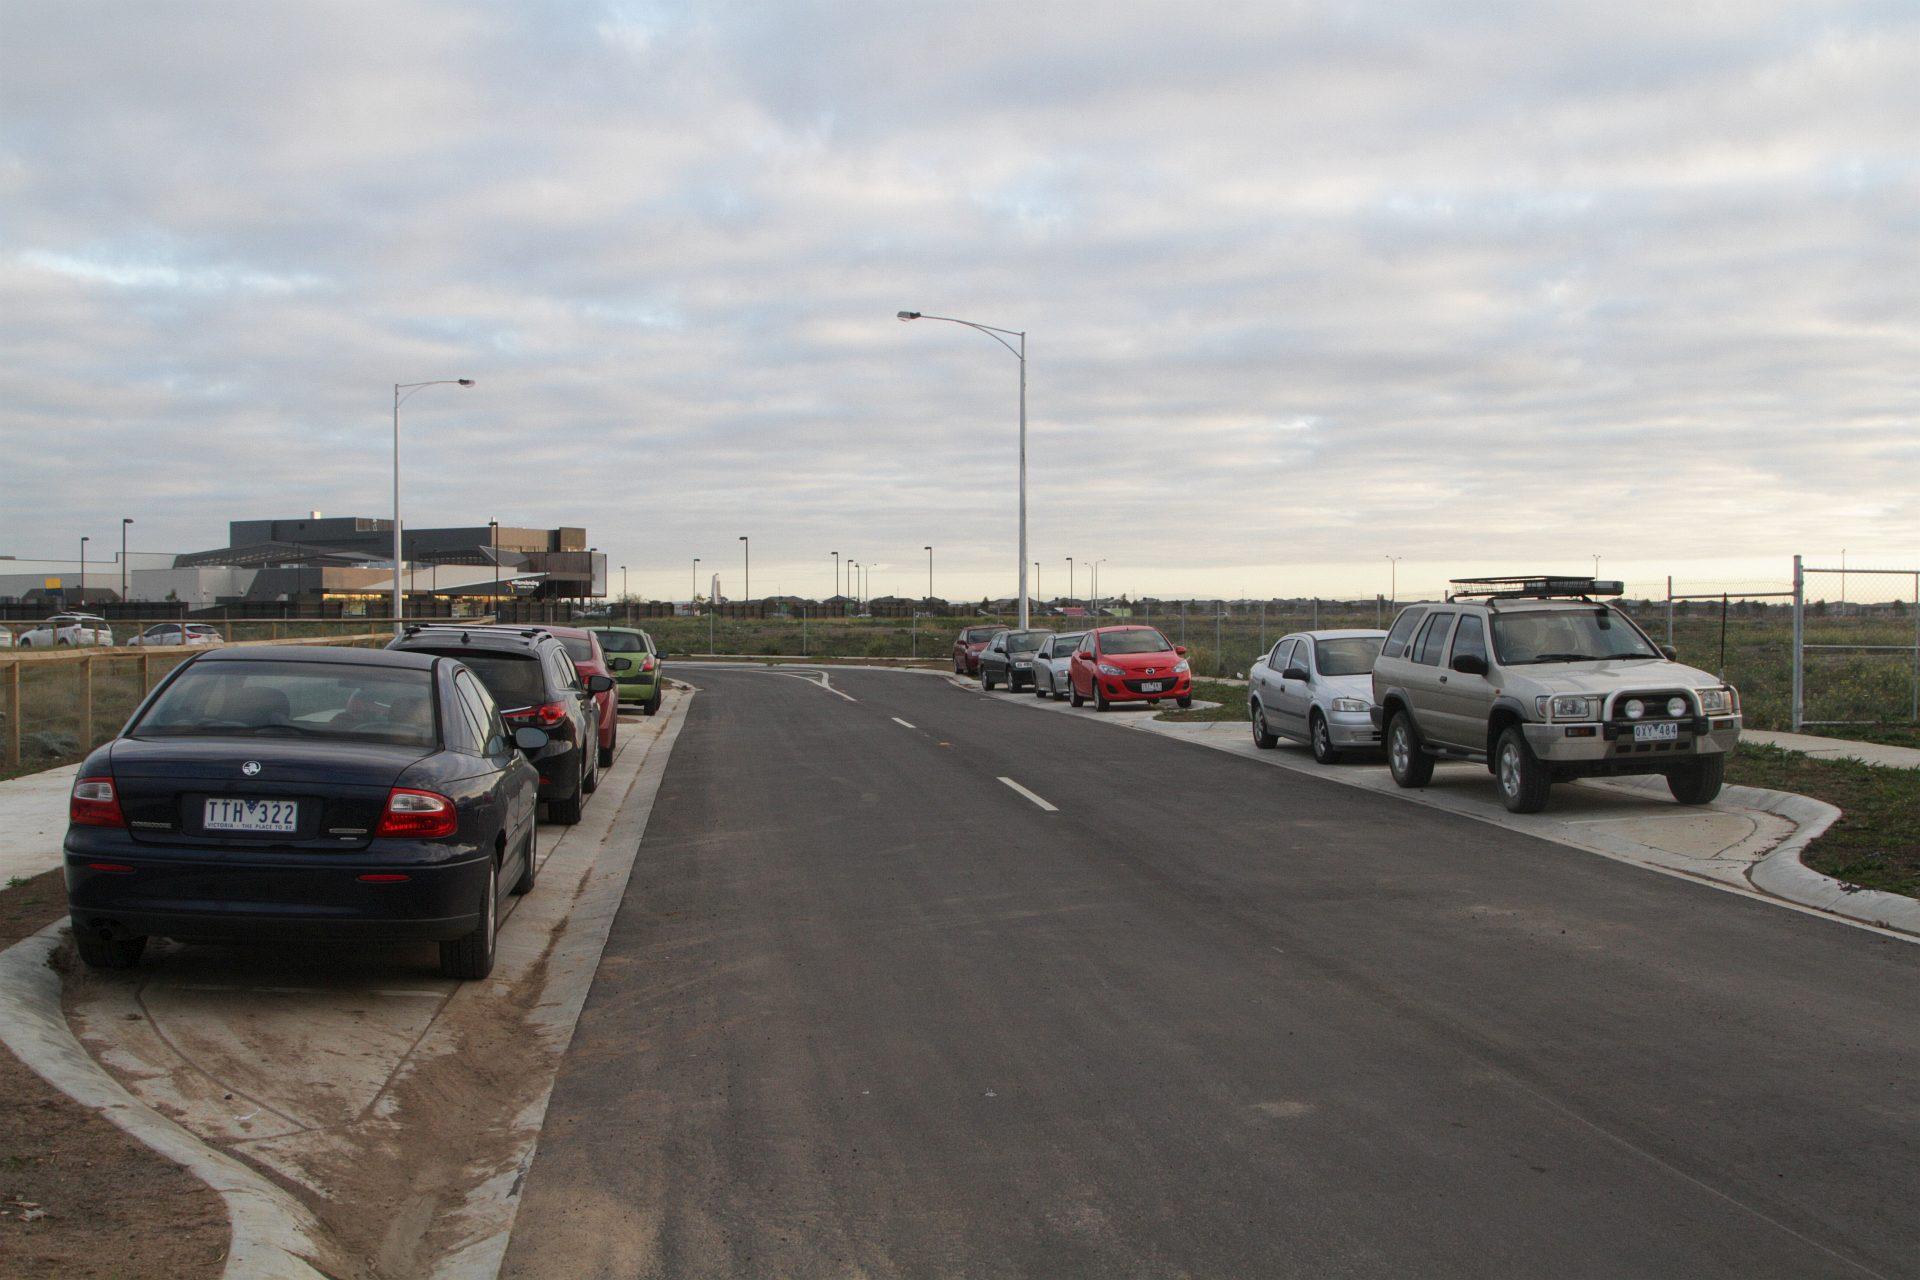 Rail Geelong Gallery Car Parking On Streets To Nowhere North Of Williams Landing Station